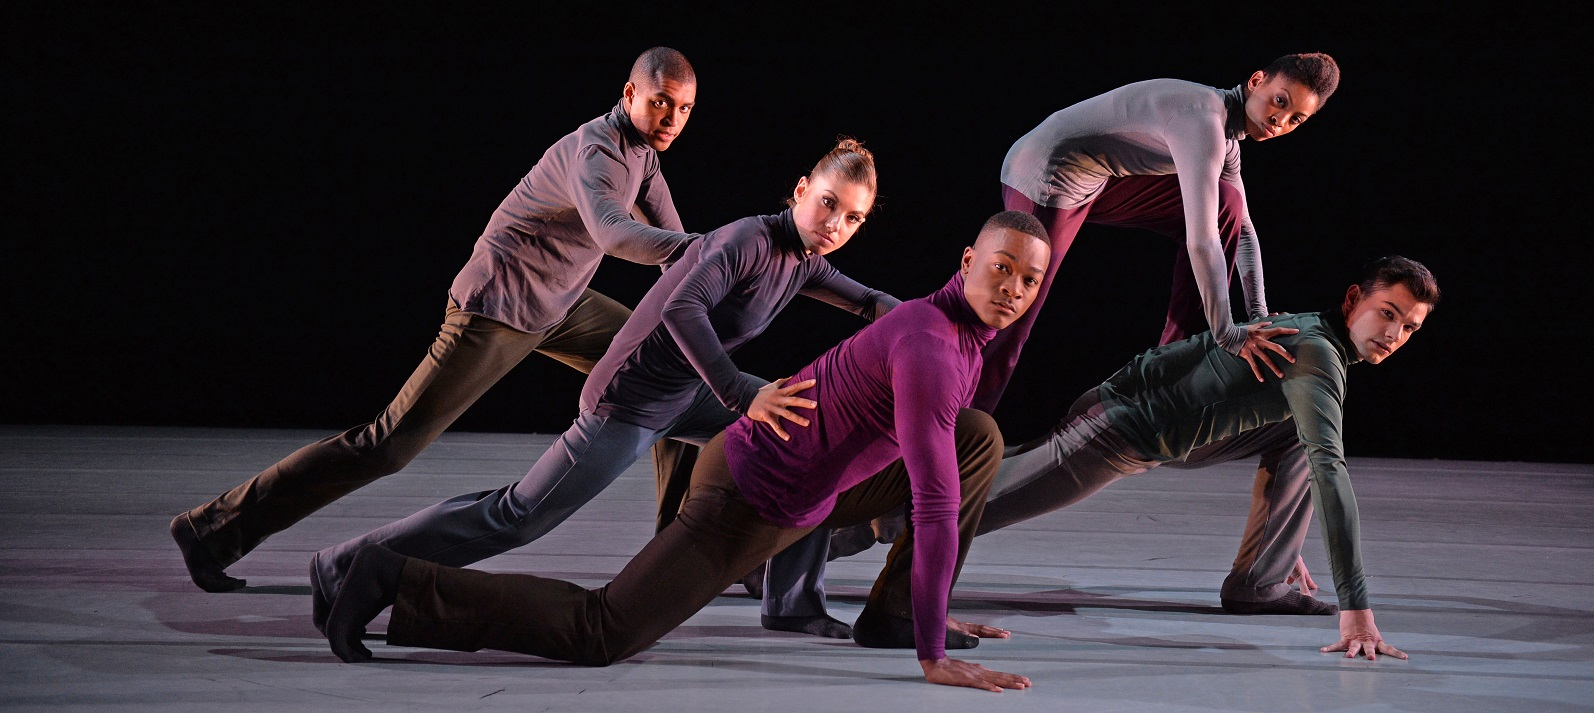 Ailey II perform at The Joyce